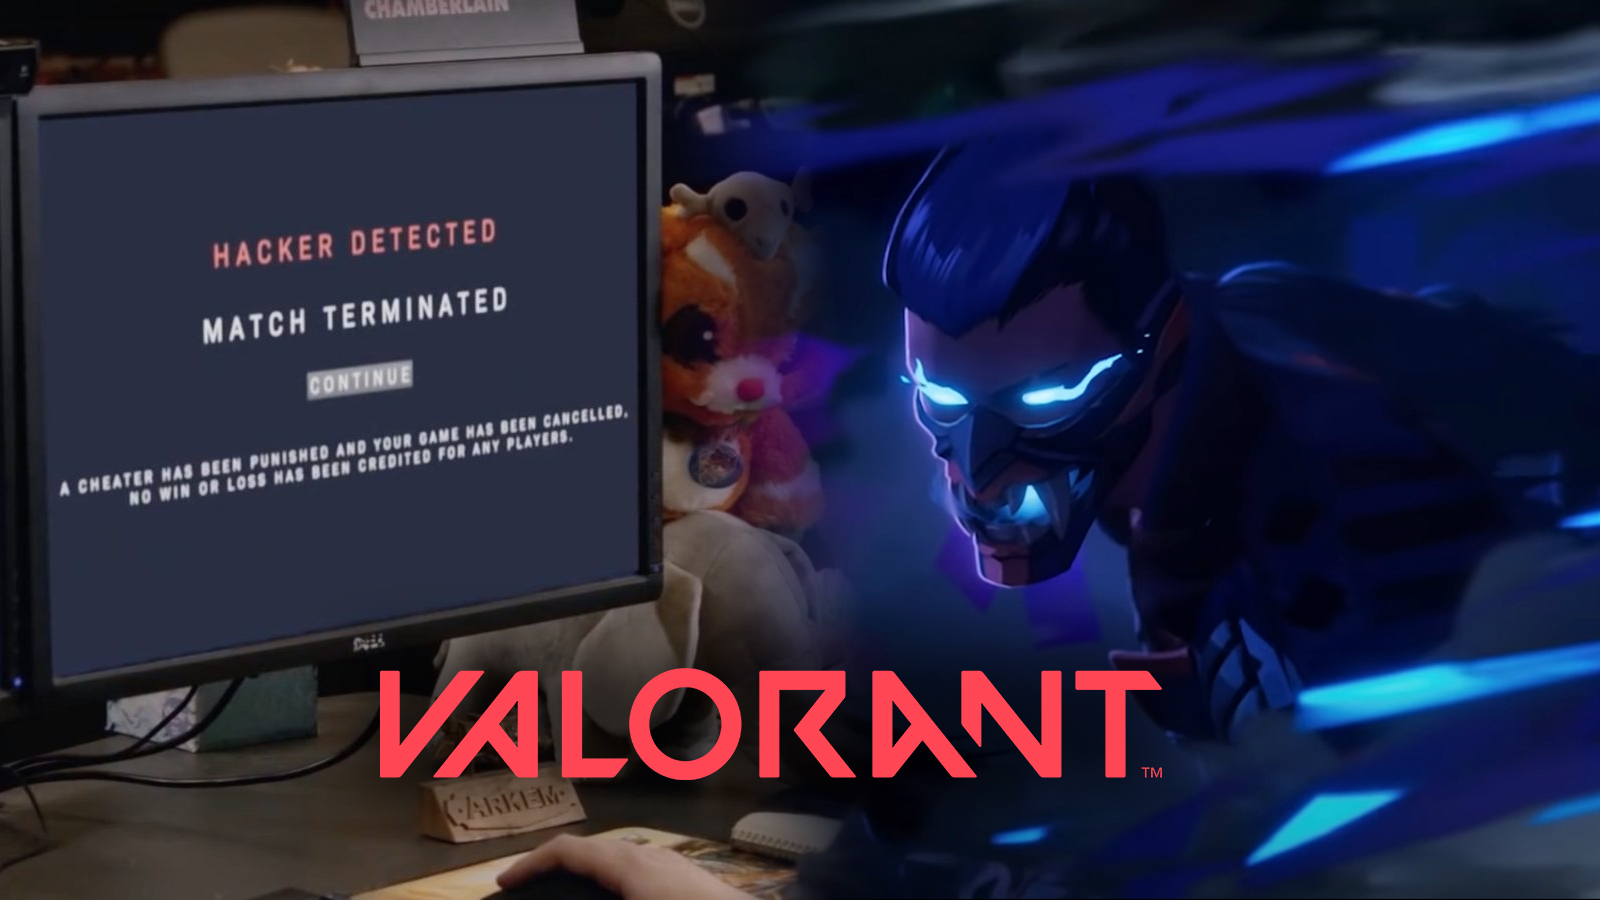 Valorant cheater detected screen next to Yoru